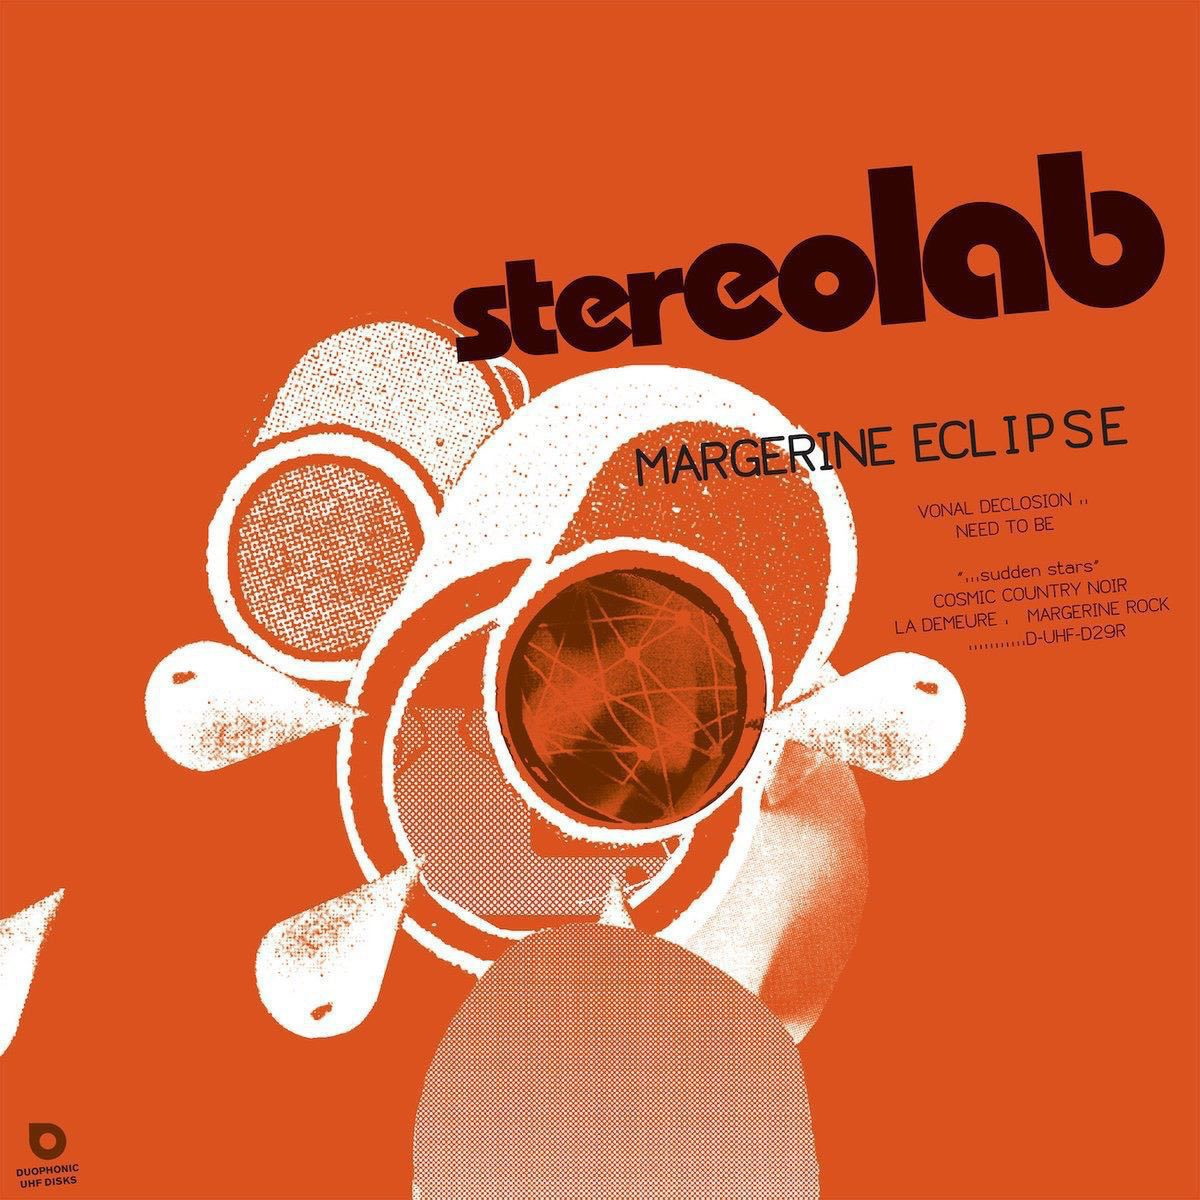 Stereolab album cover image